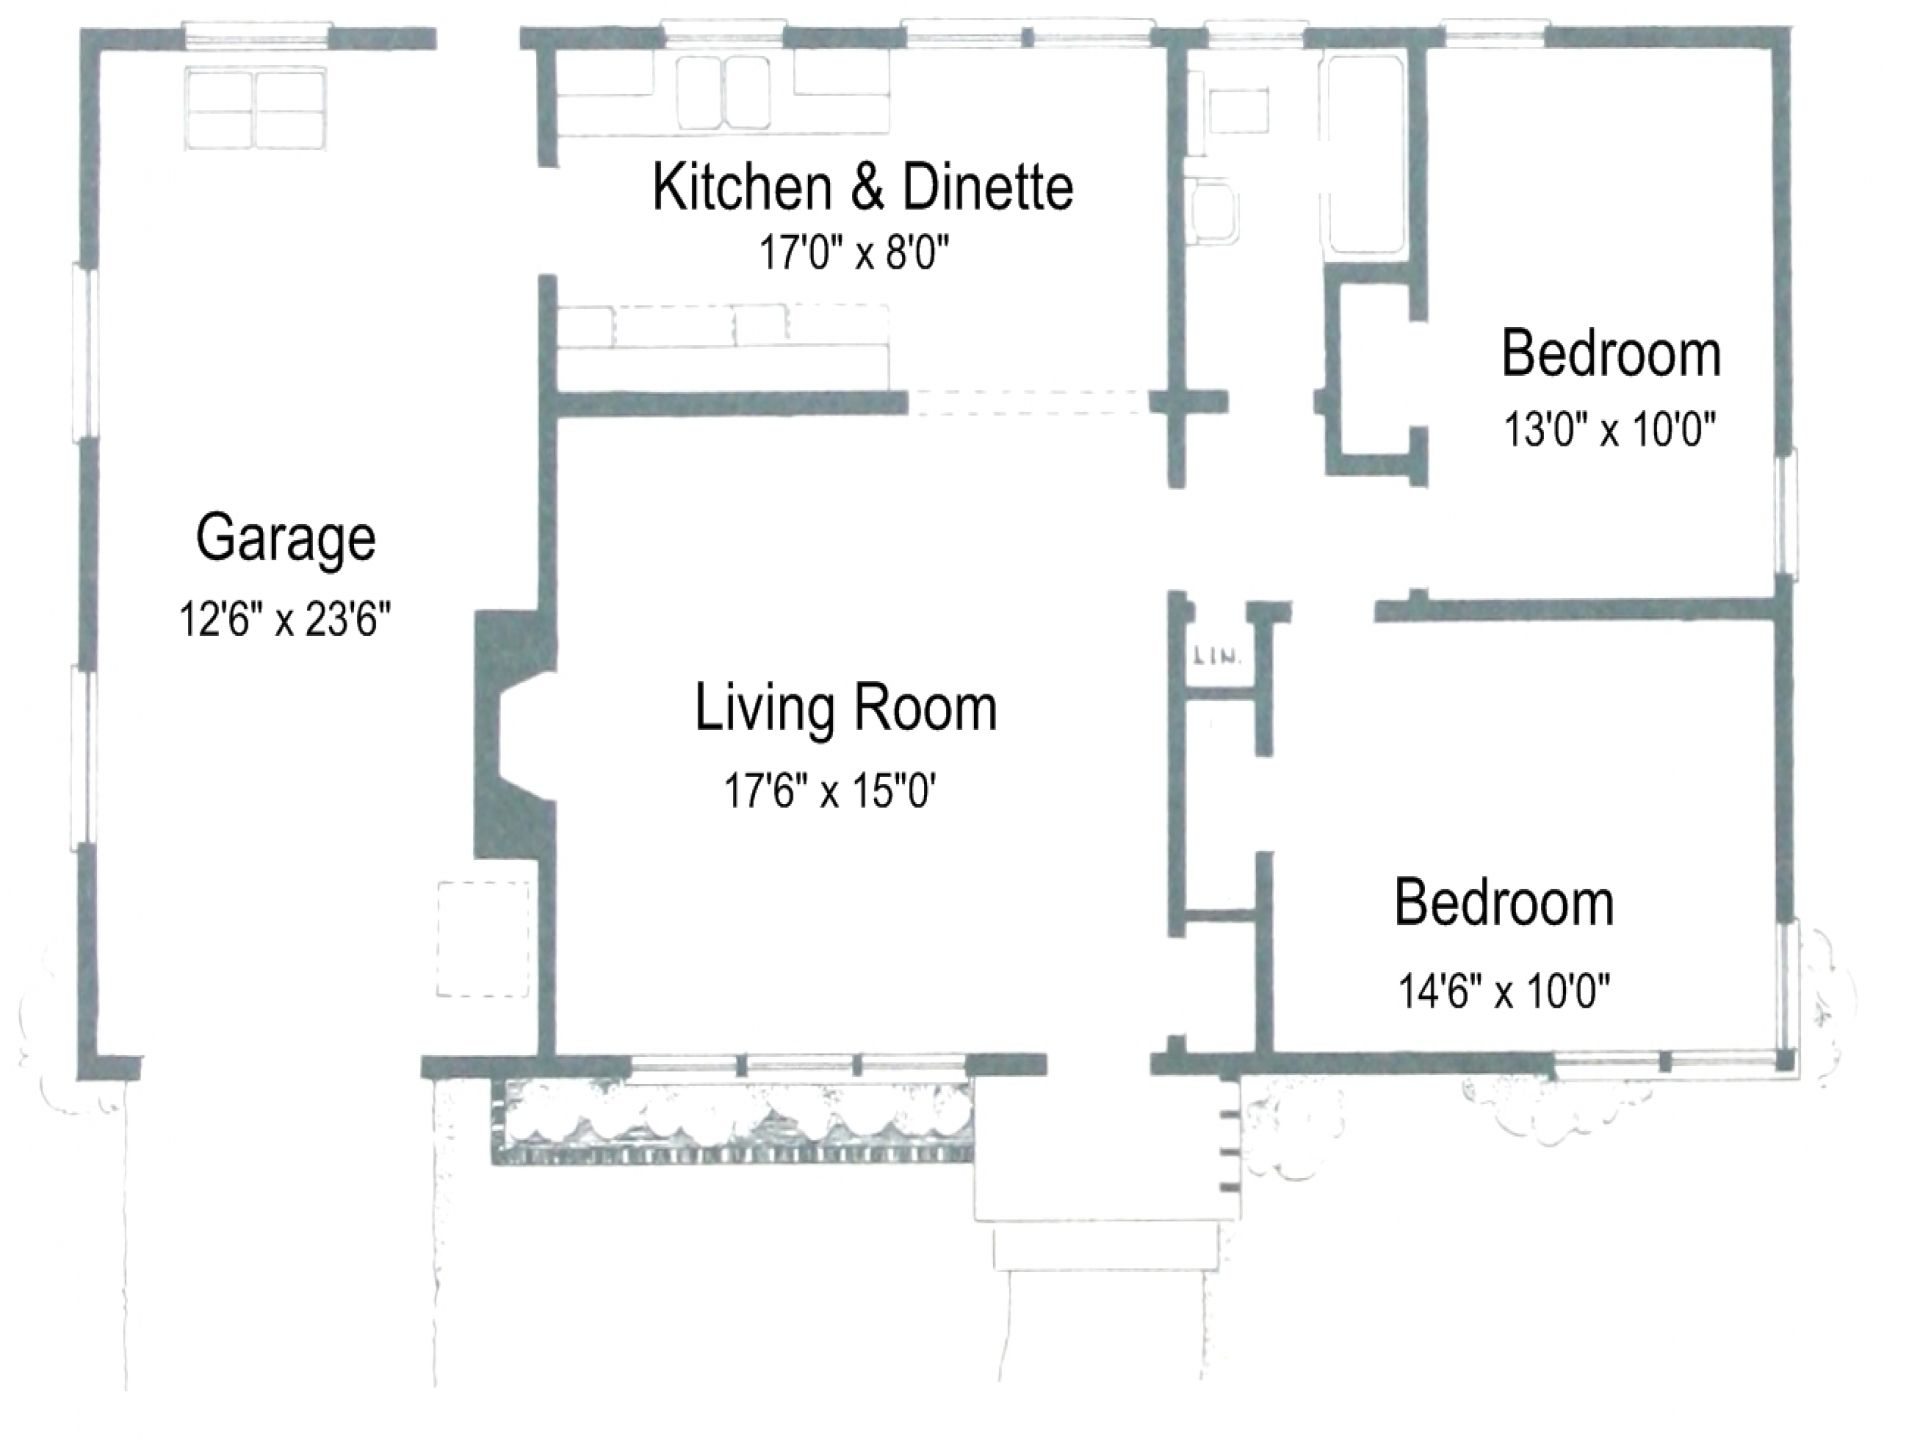 4-2-bedroom-2-bath-2-car-garage-house-plans-bedroom-2-bath-house ...